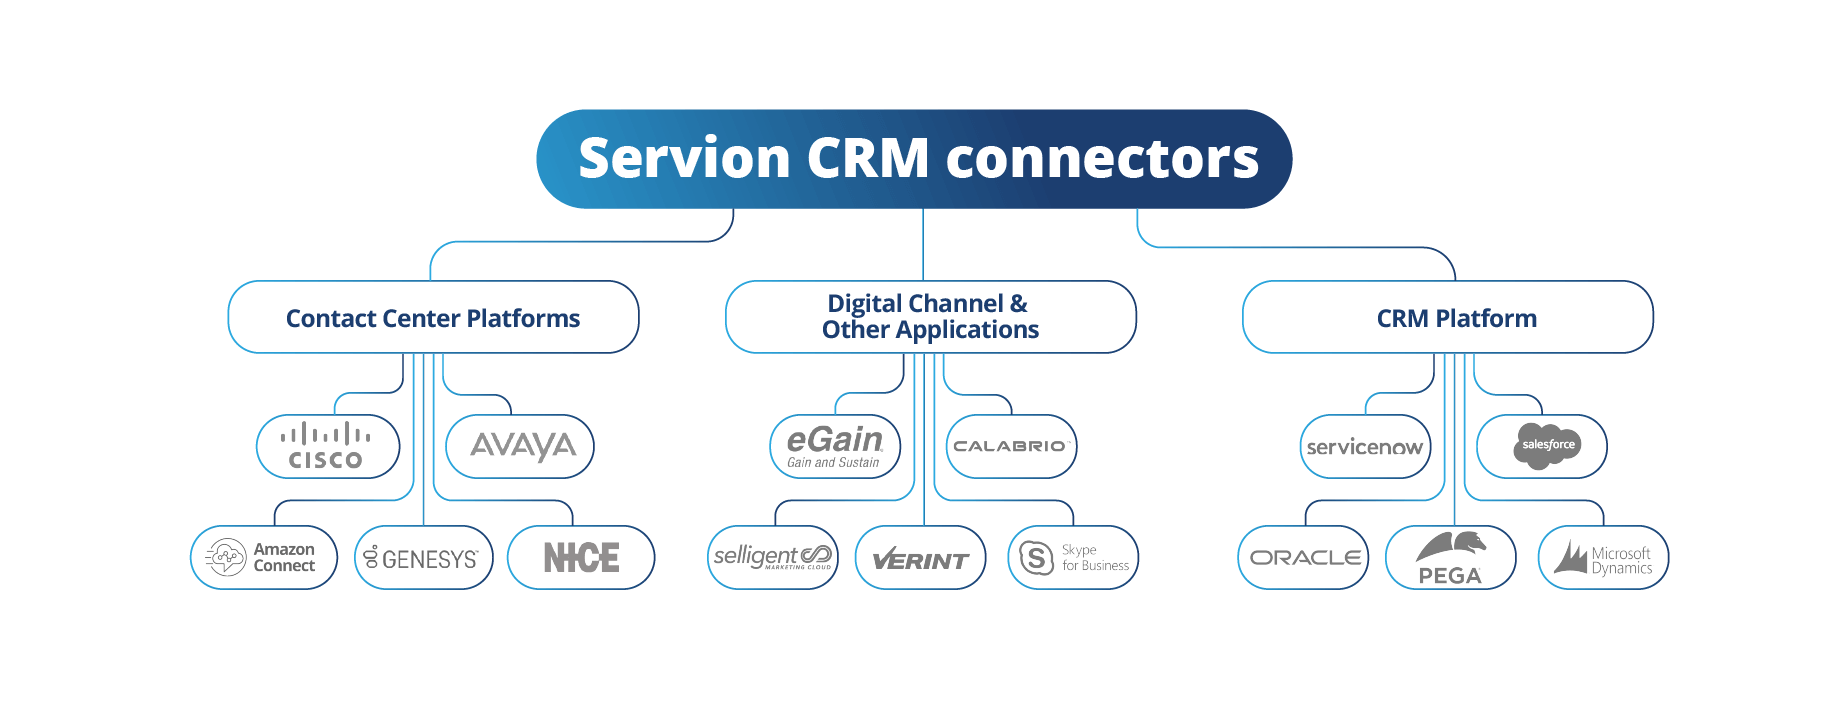 CRM Connectors for leading Contact Center Platforms and CRMS